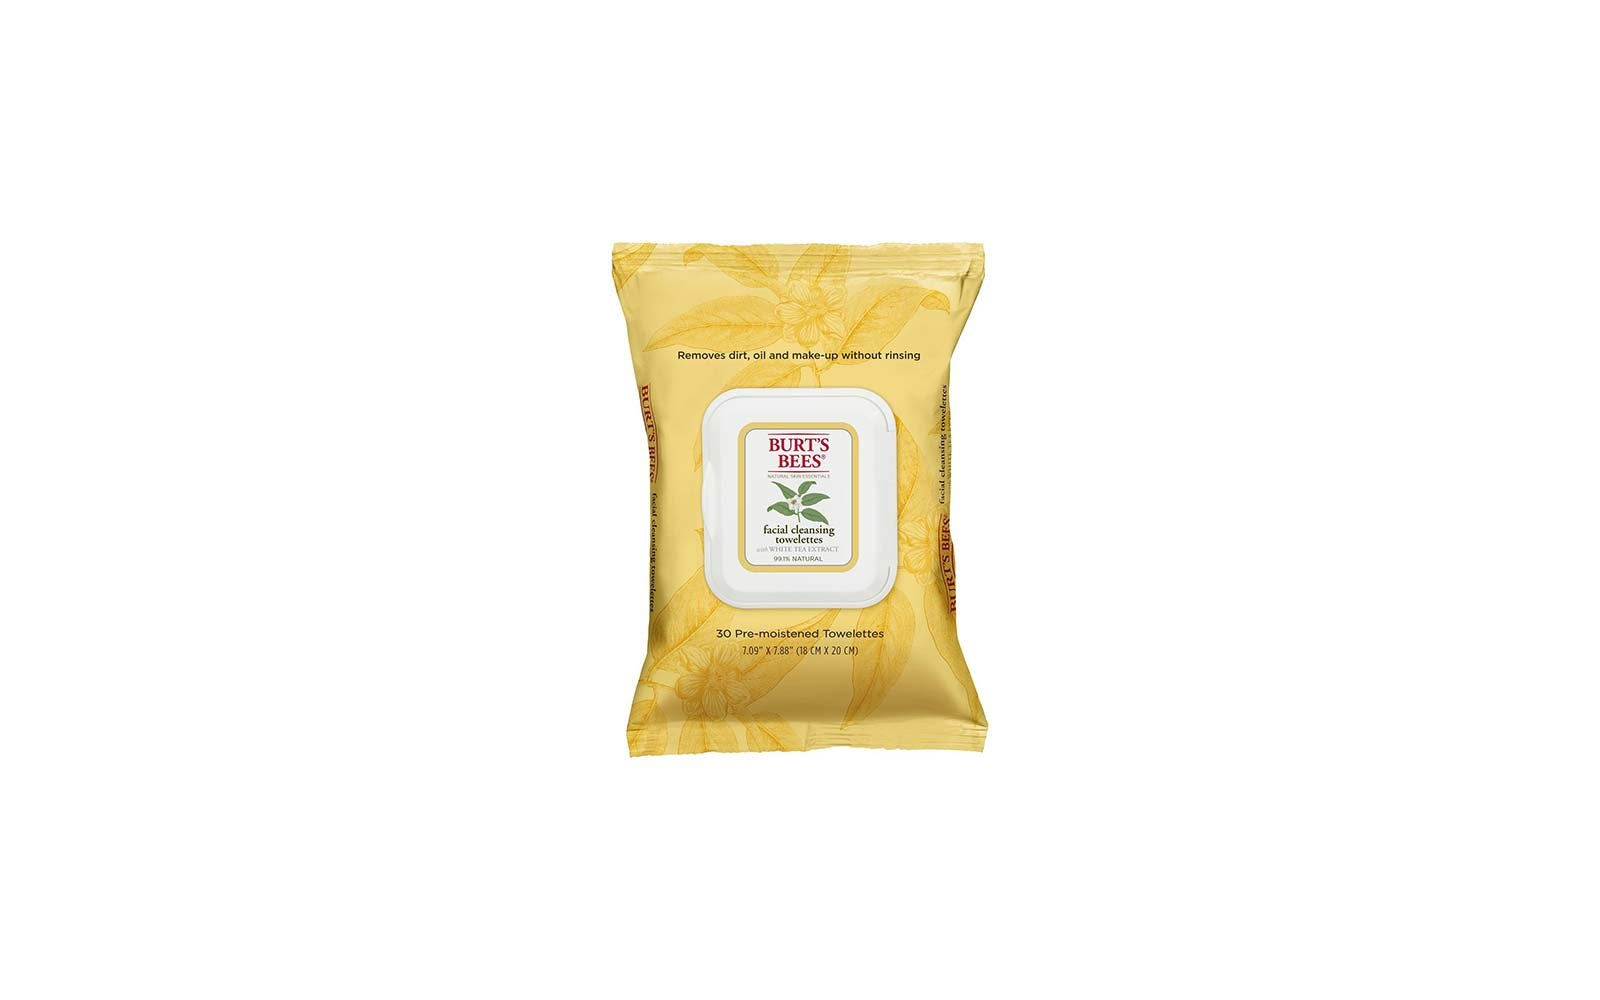 Burts Bees Cleansing Towelettes